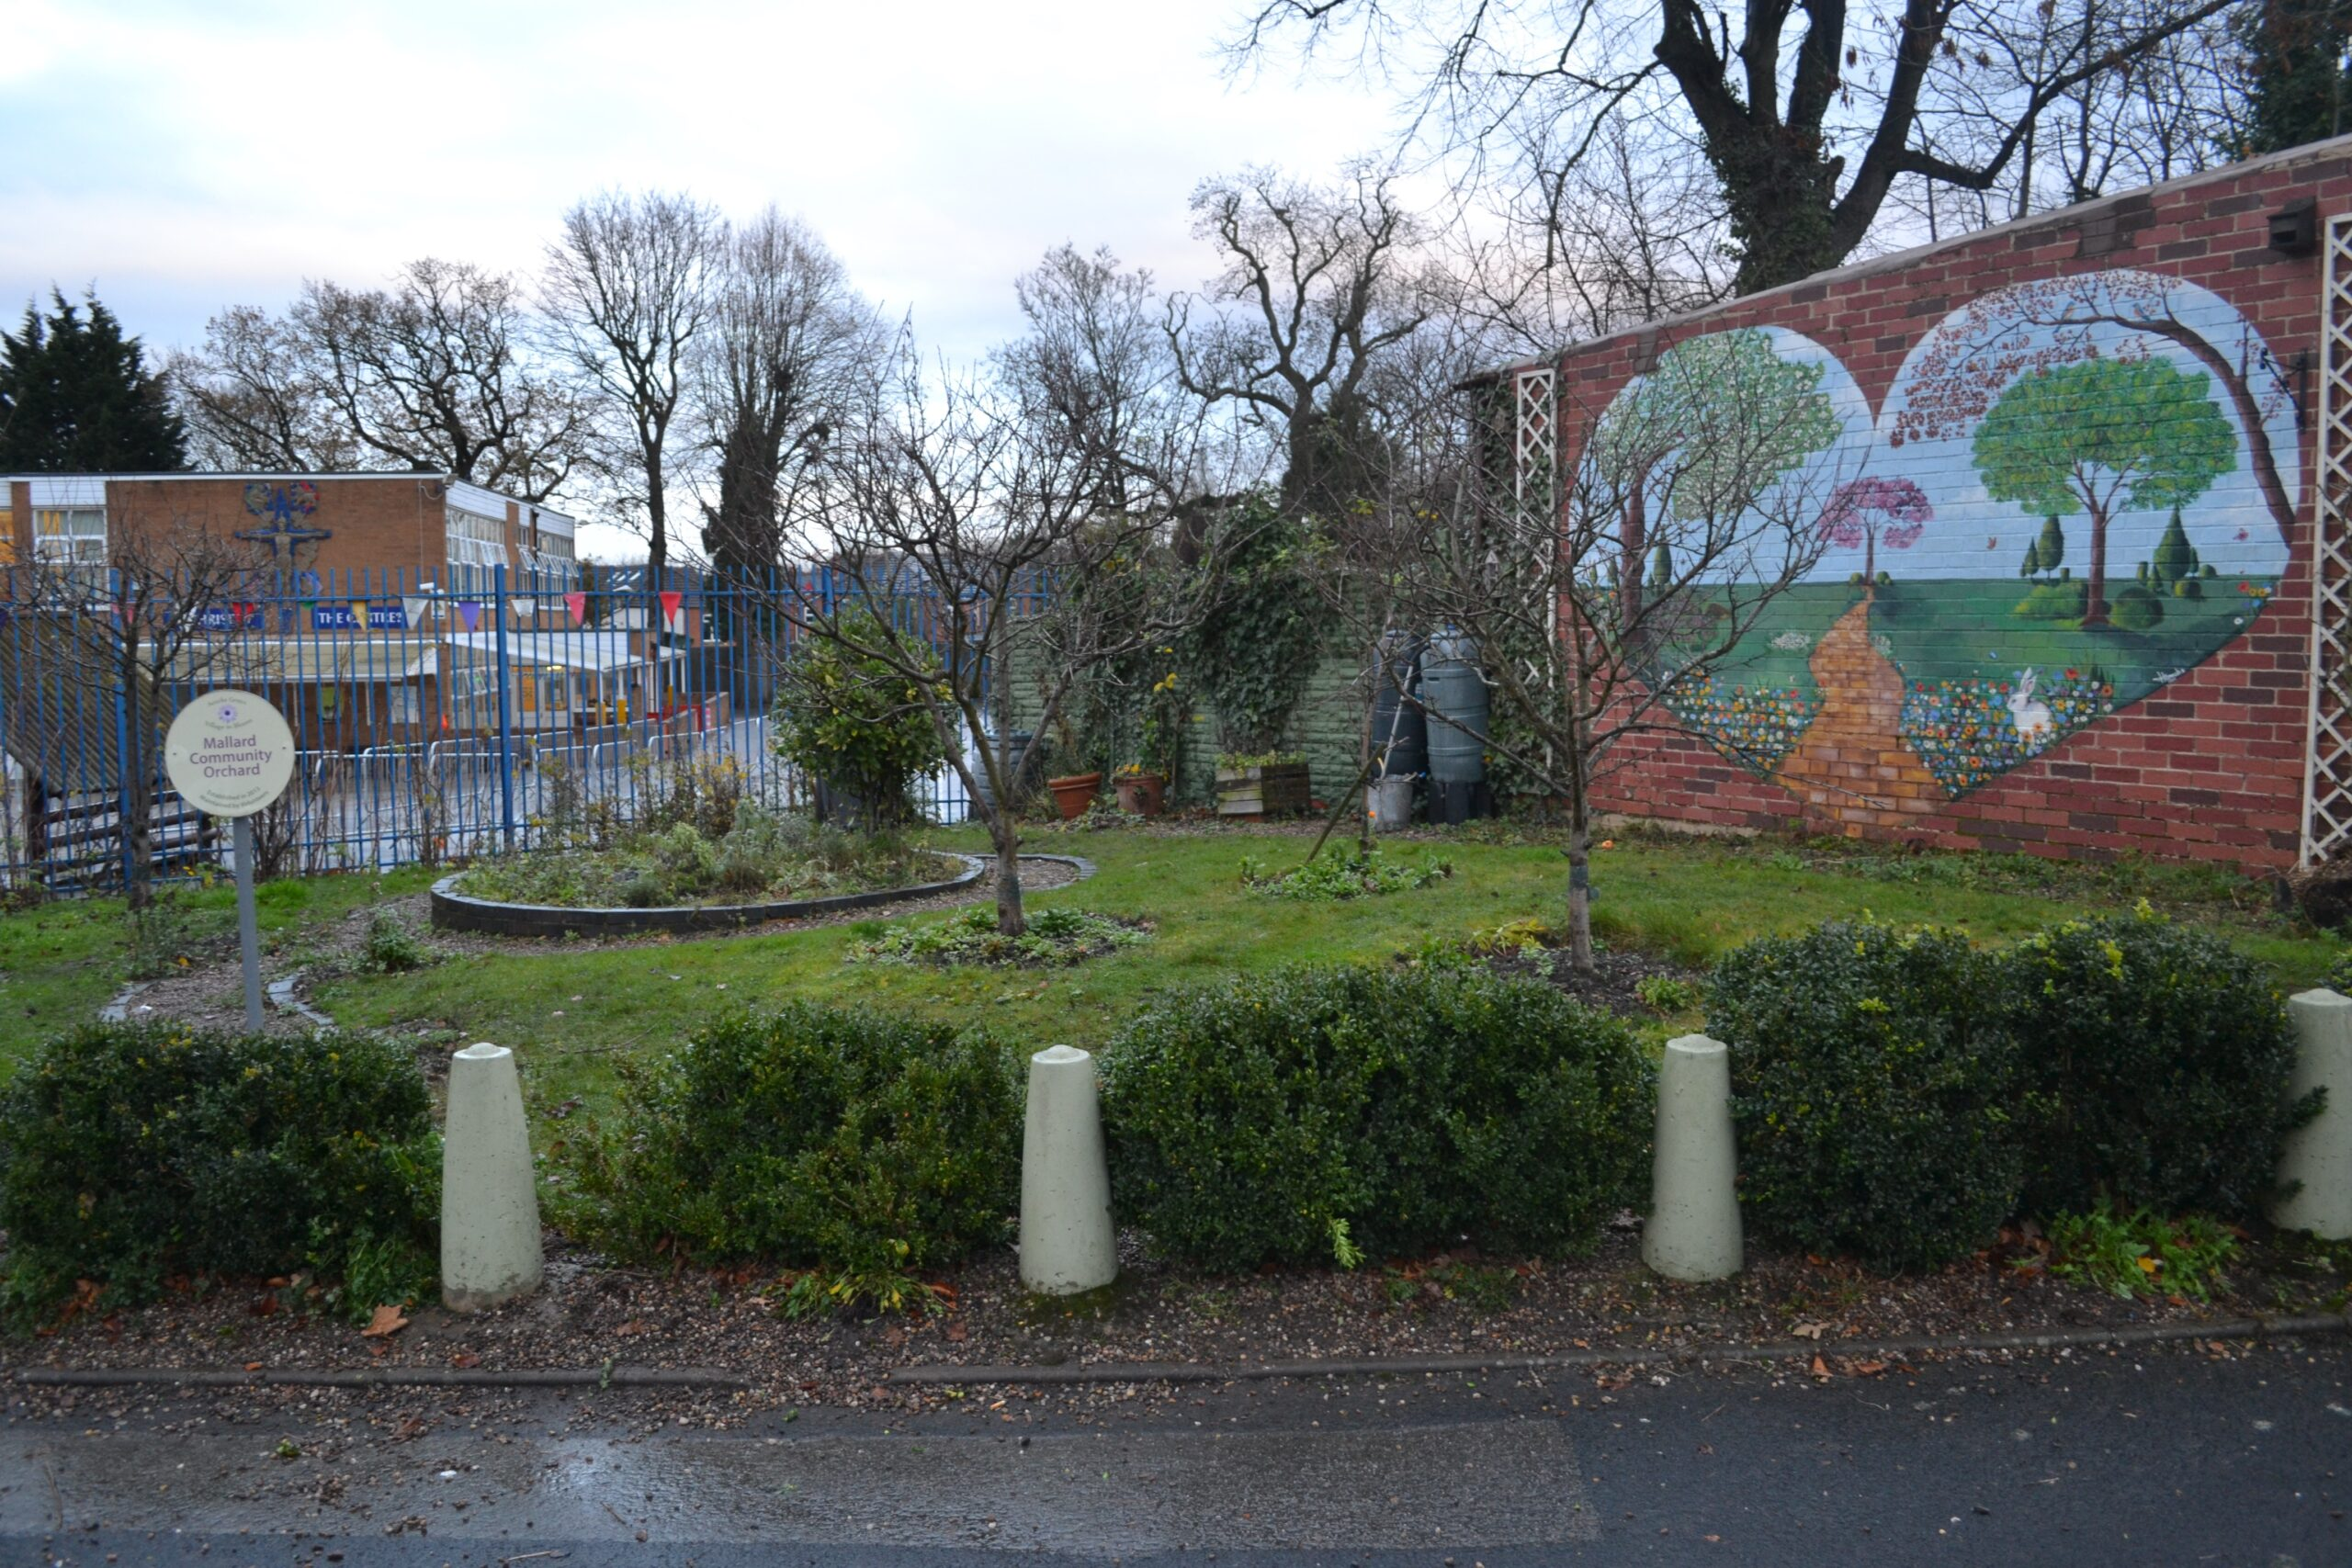 Acocks Green – Commonwealth Games Feasibility Study